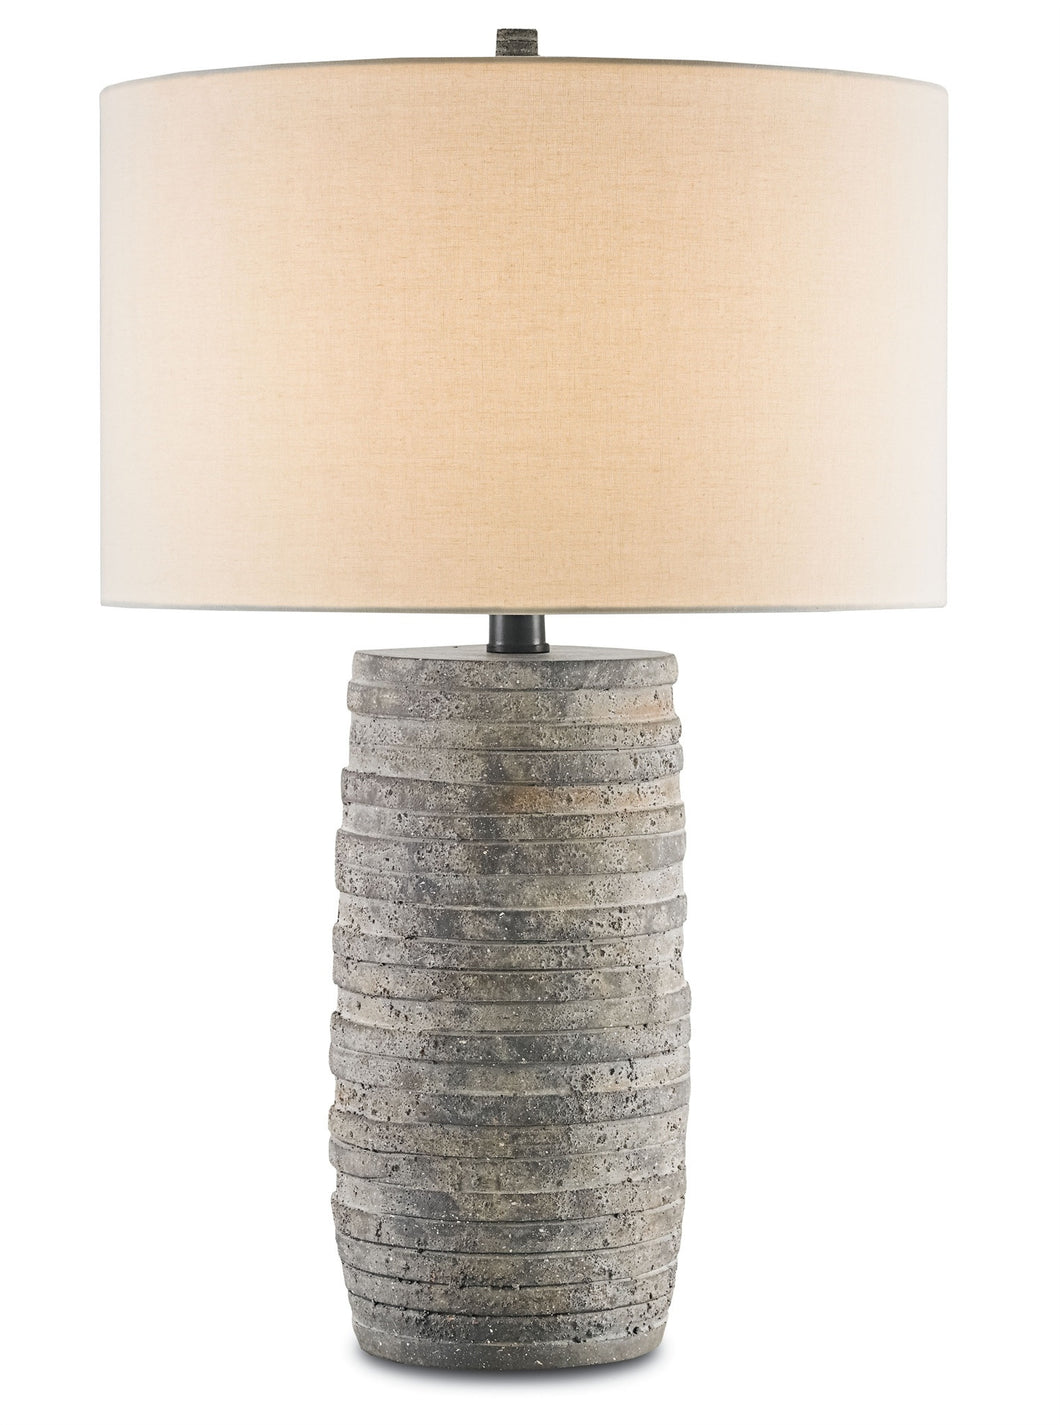 table lamp, flat discs of terracotta encircle a wrought iron spine